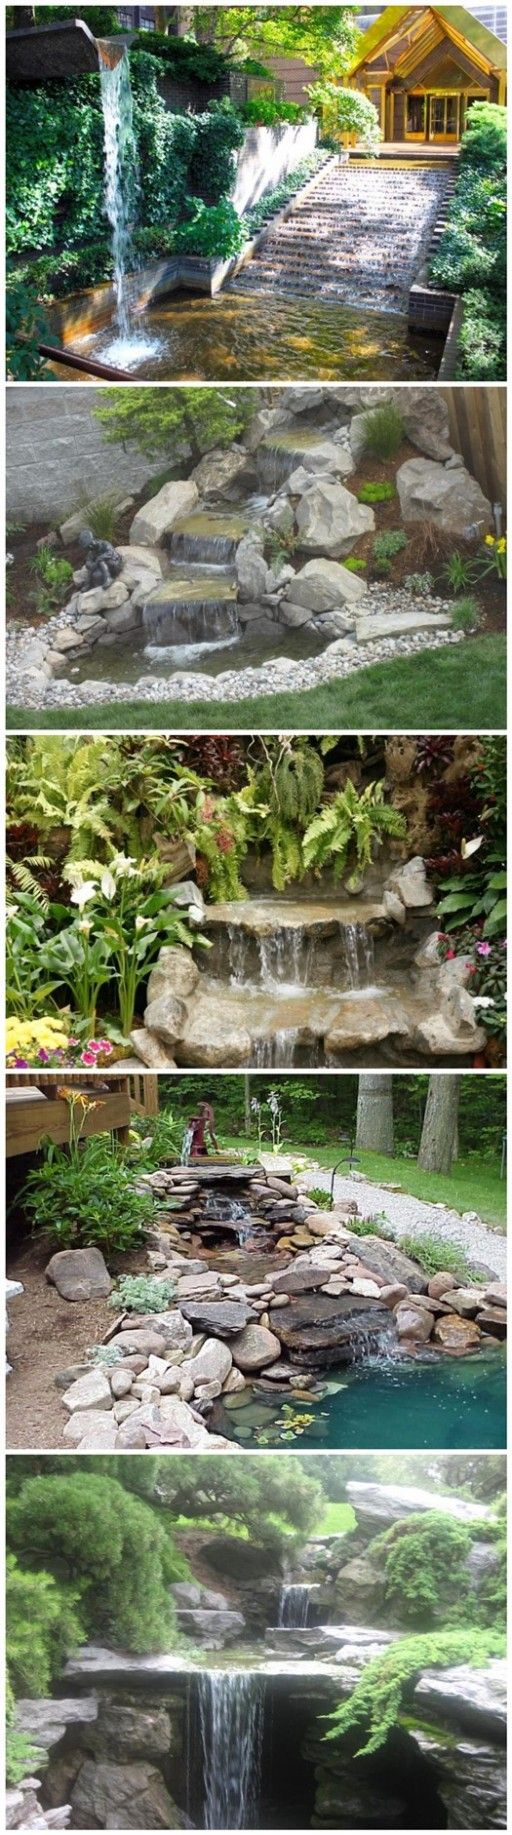 17 best ideas about garden waterfall on pinterest for Landscape ponds and waterfalls pictures